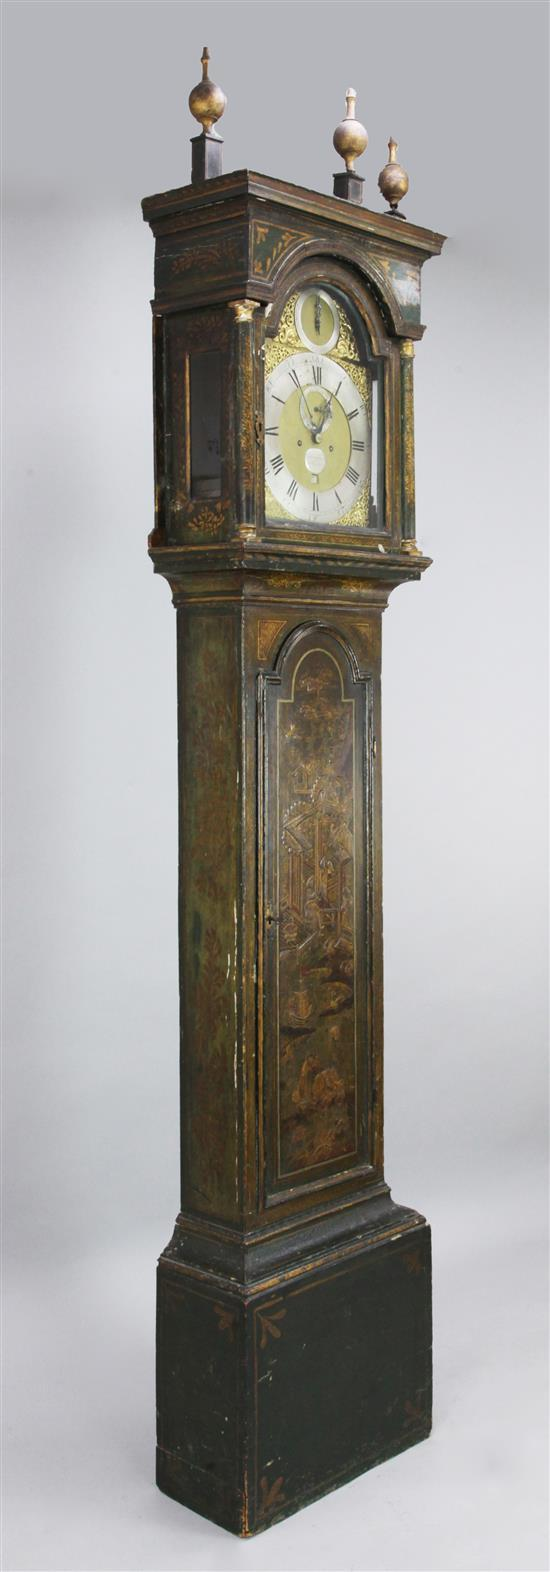 Jethro Tull of Newbery. An early 18th century eight day longcase clock, 8ft